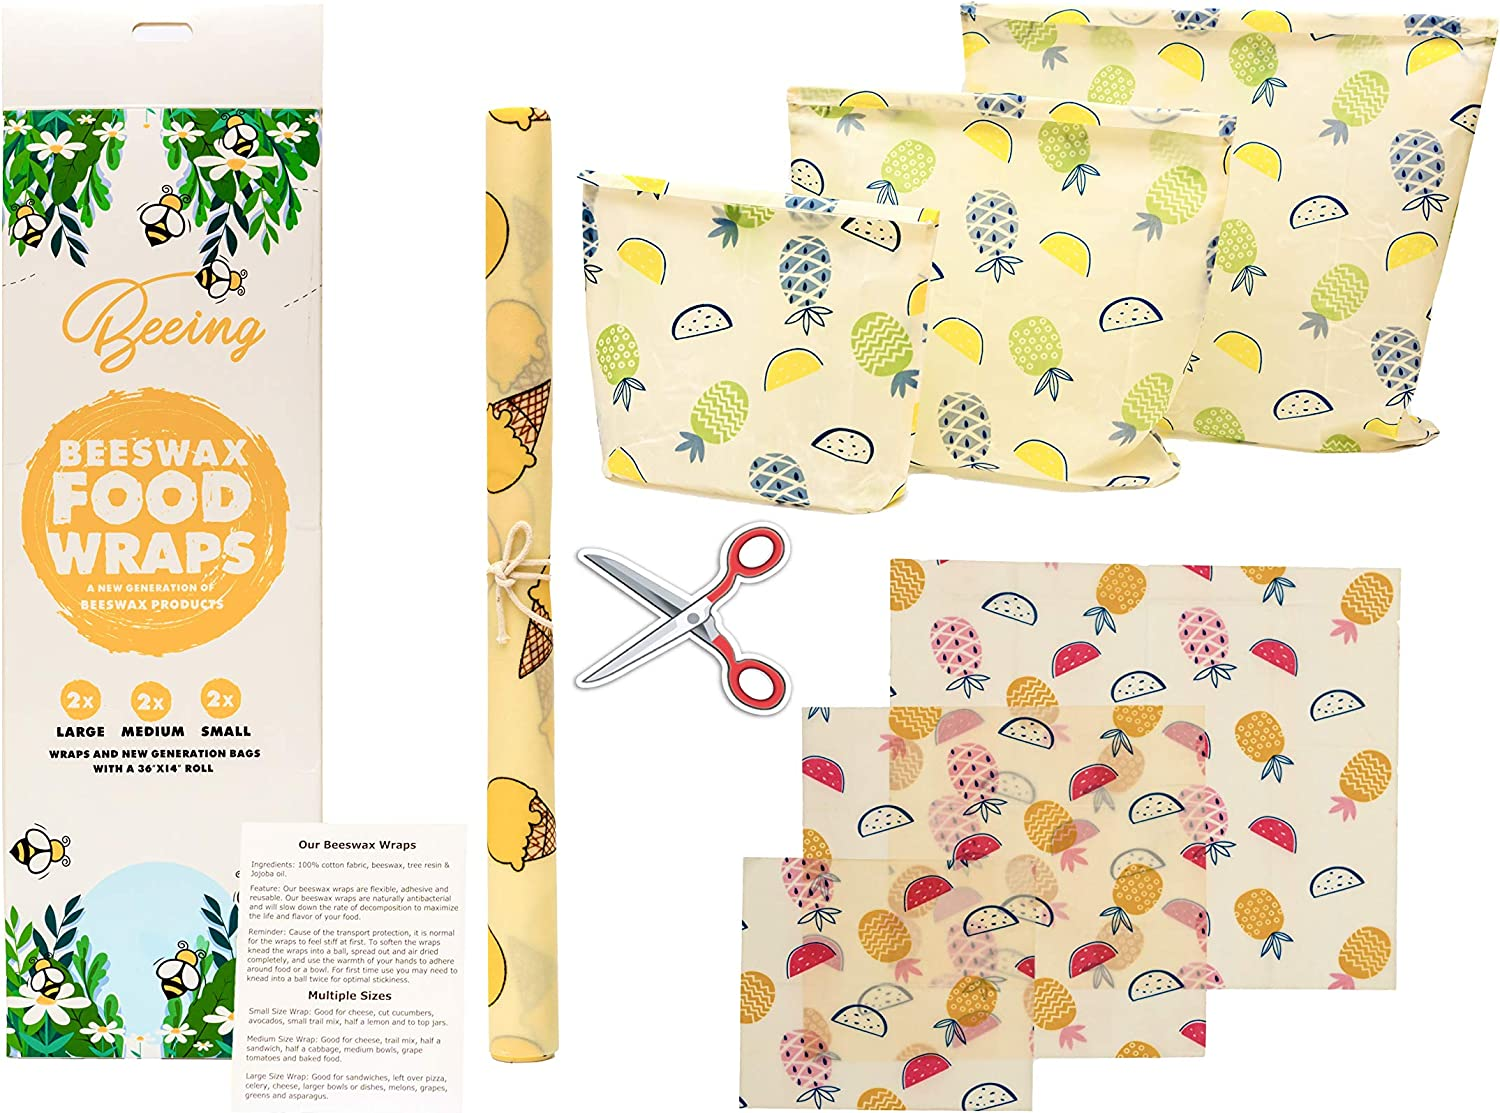 BEESWAX FOOD WRAP - 7 PACK ECO-FRIENDLY PRODUCTS - MANUALLY SEWED REUSABLE BAGS - 100% ORGANIC BEESWAX WRAPPING PAPER STORAGE - SUSTAINABLE PLASTIC FREE FOOD STORAGE - 3 SIZES (S, M, L)